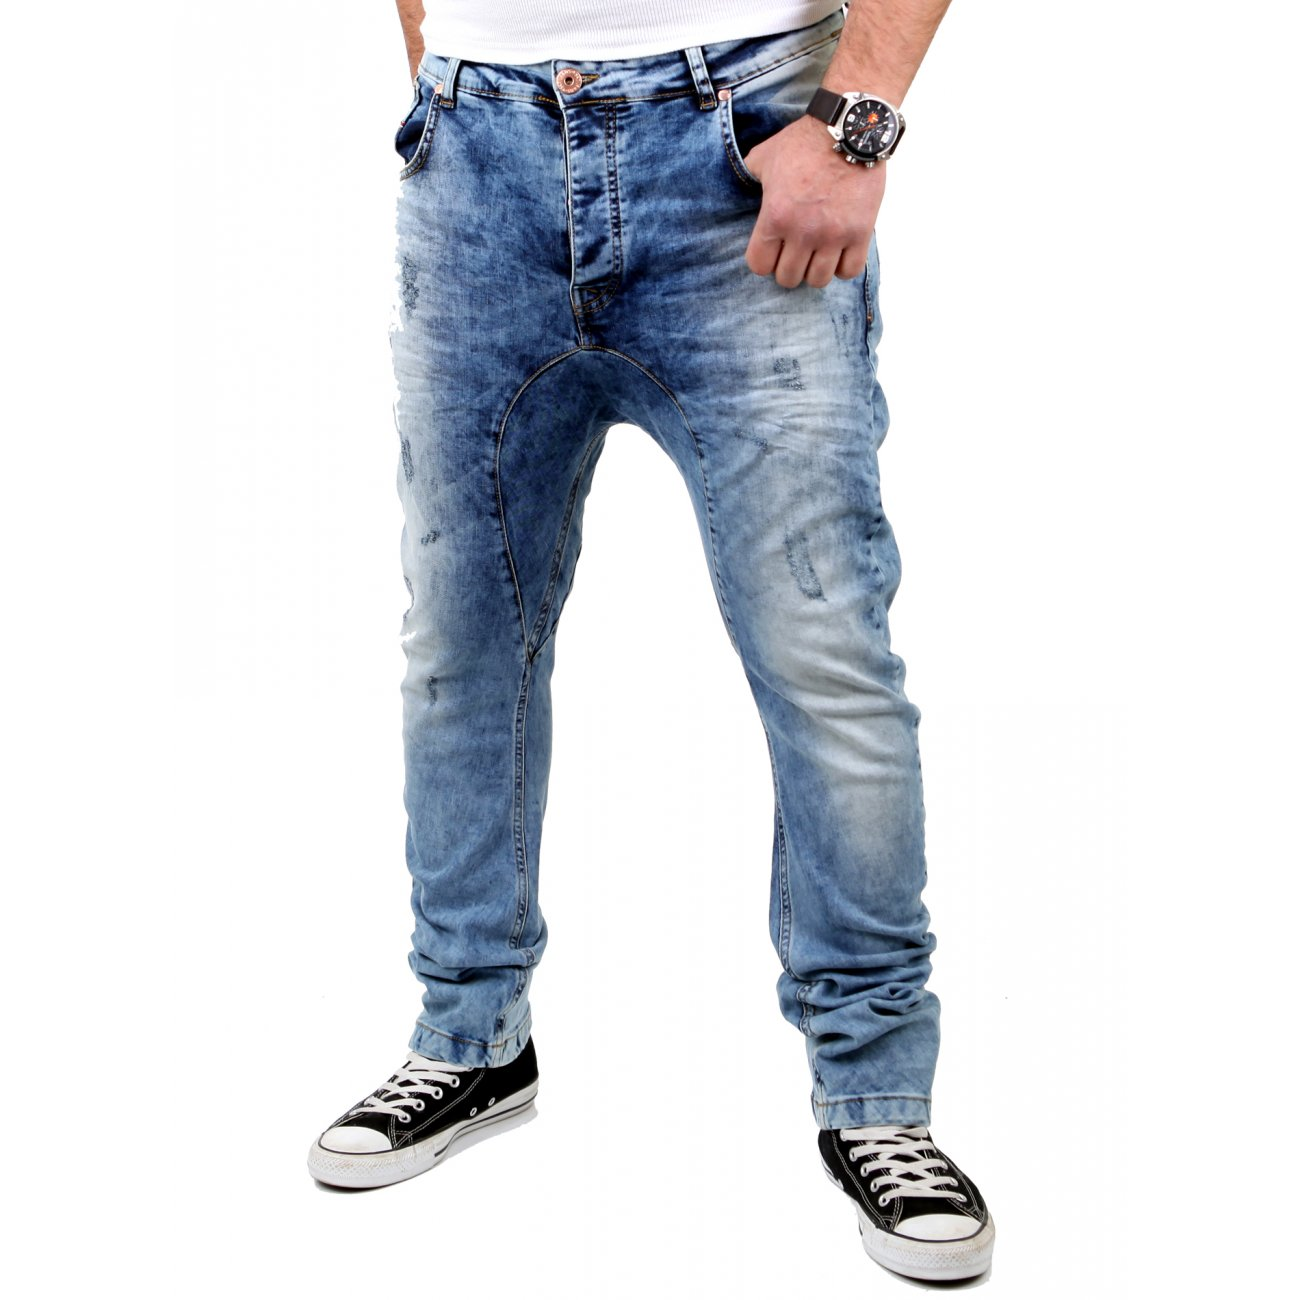 jeans spencer hellblau vsct low crotch jeans hose g nstig. Black Bedroom Furniture Sets. Home Design Ideas